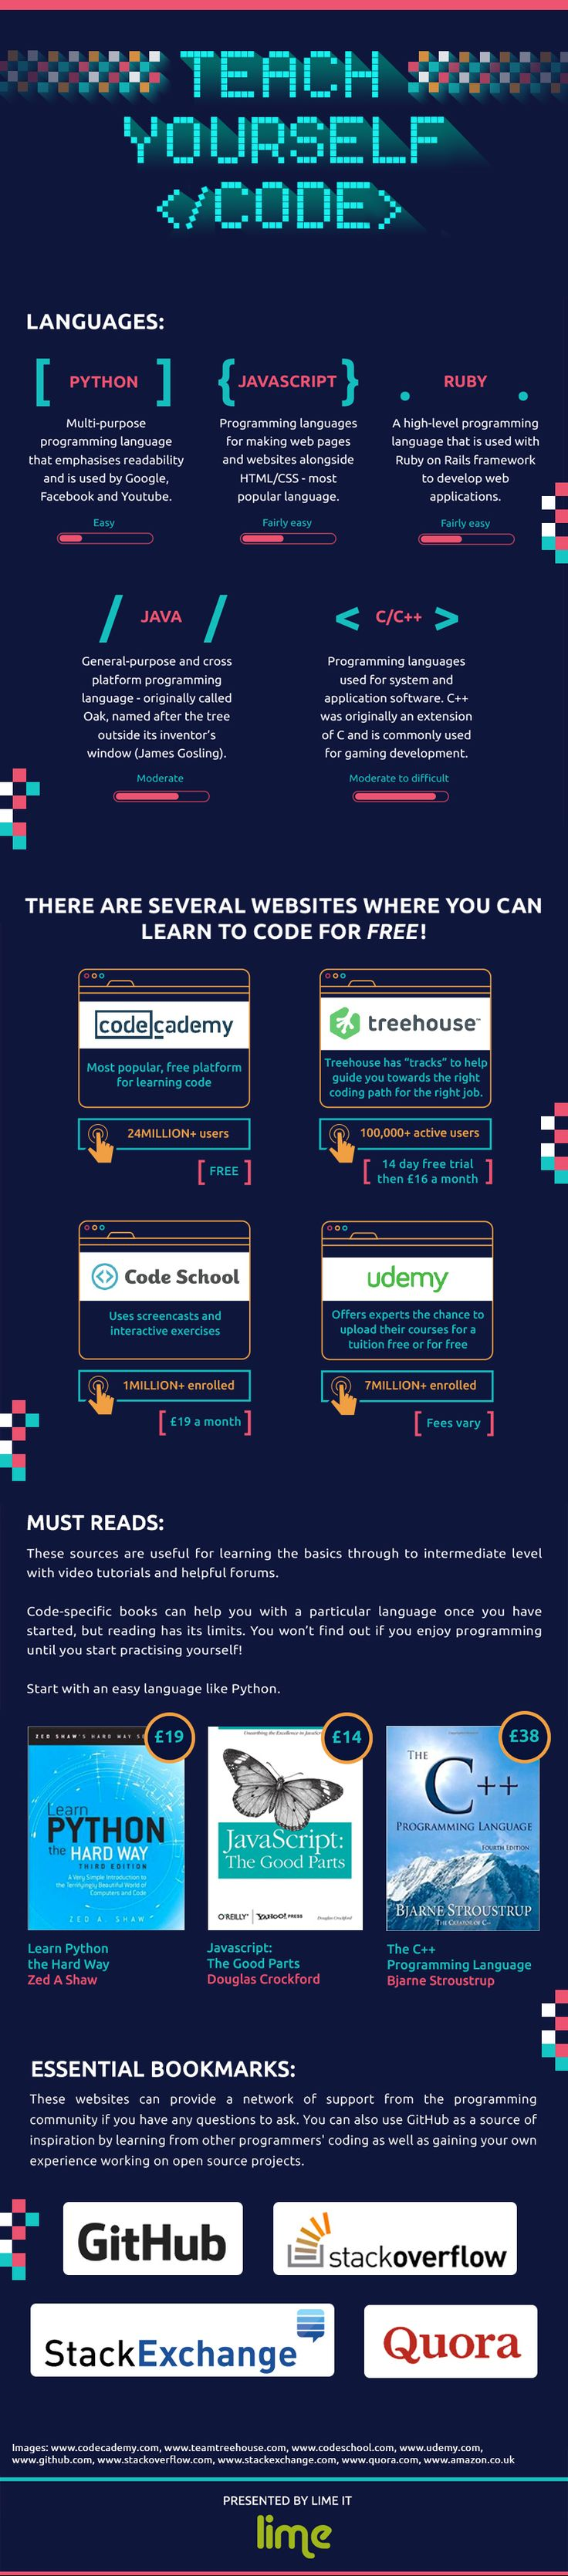 How to Teach Yourself Code Infographic - http://elearninginfographics.com/teach-yourself-code/